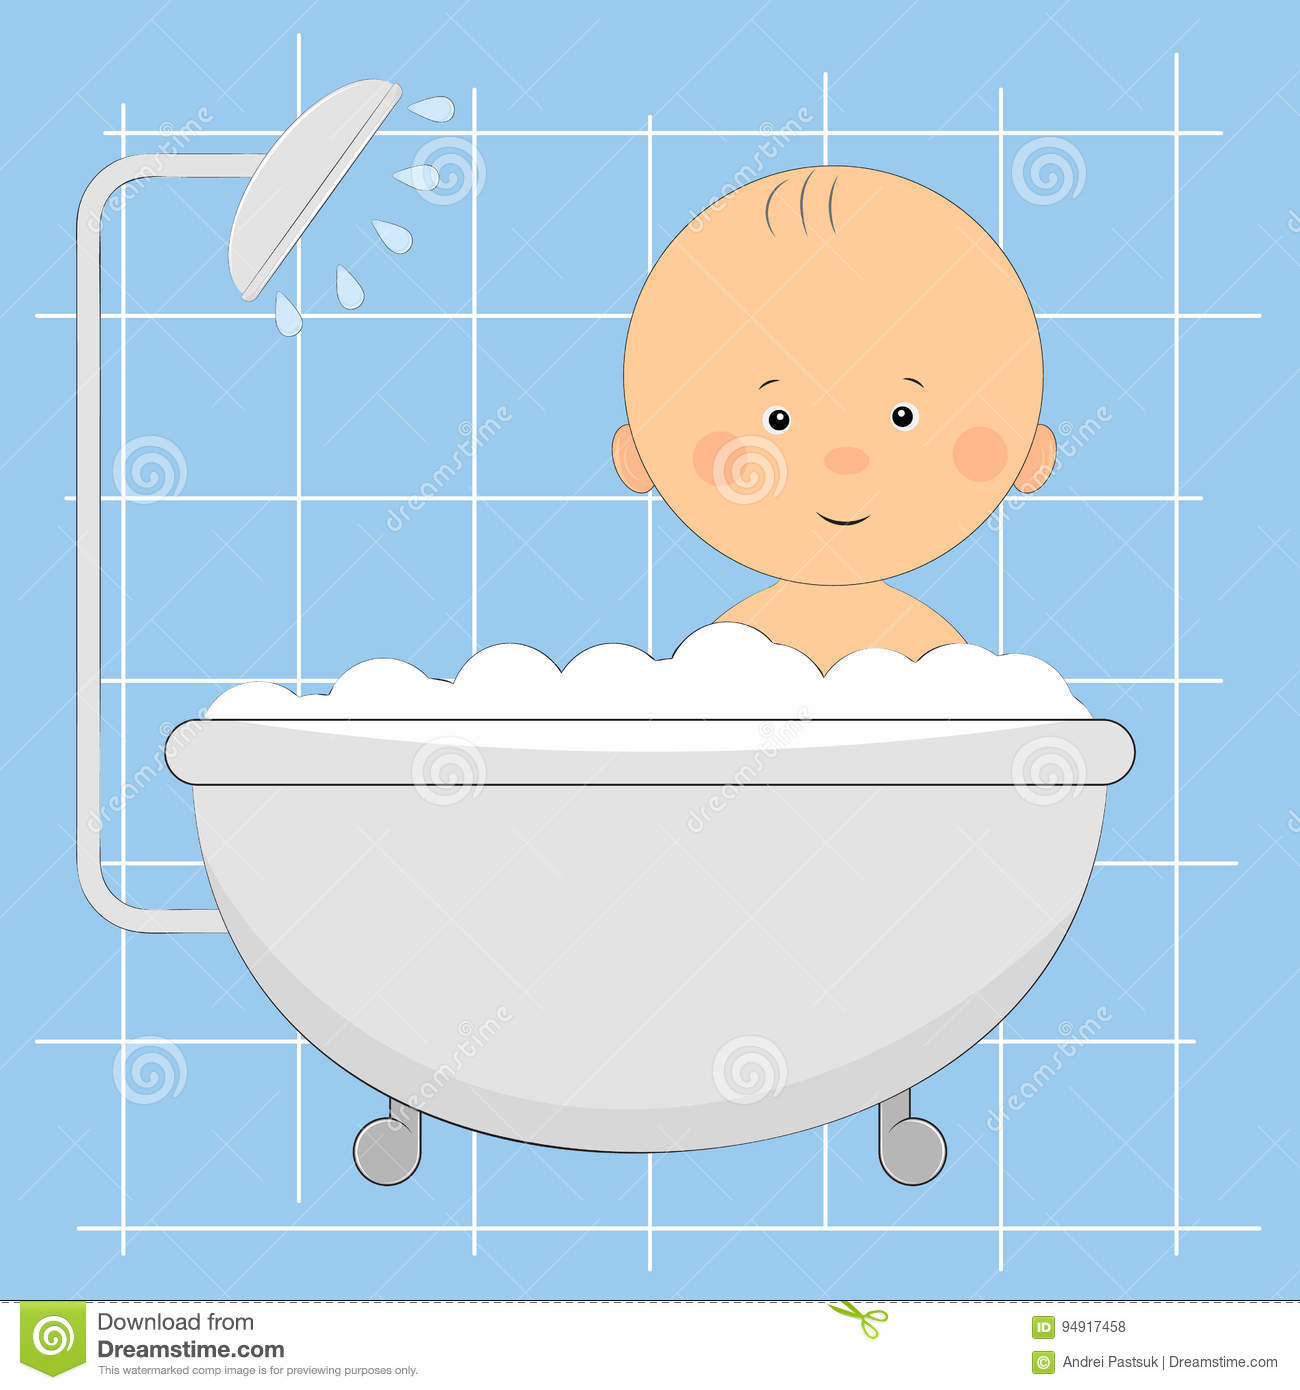 Cute Little Boy In The Shower. Stock Vector - Illustration of clip ...